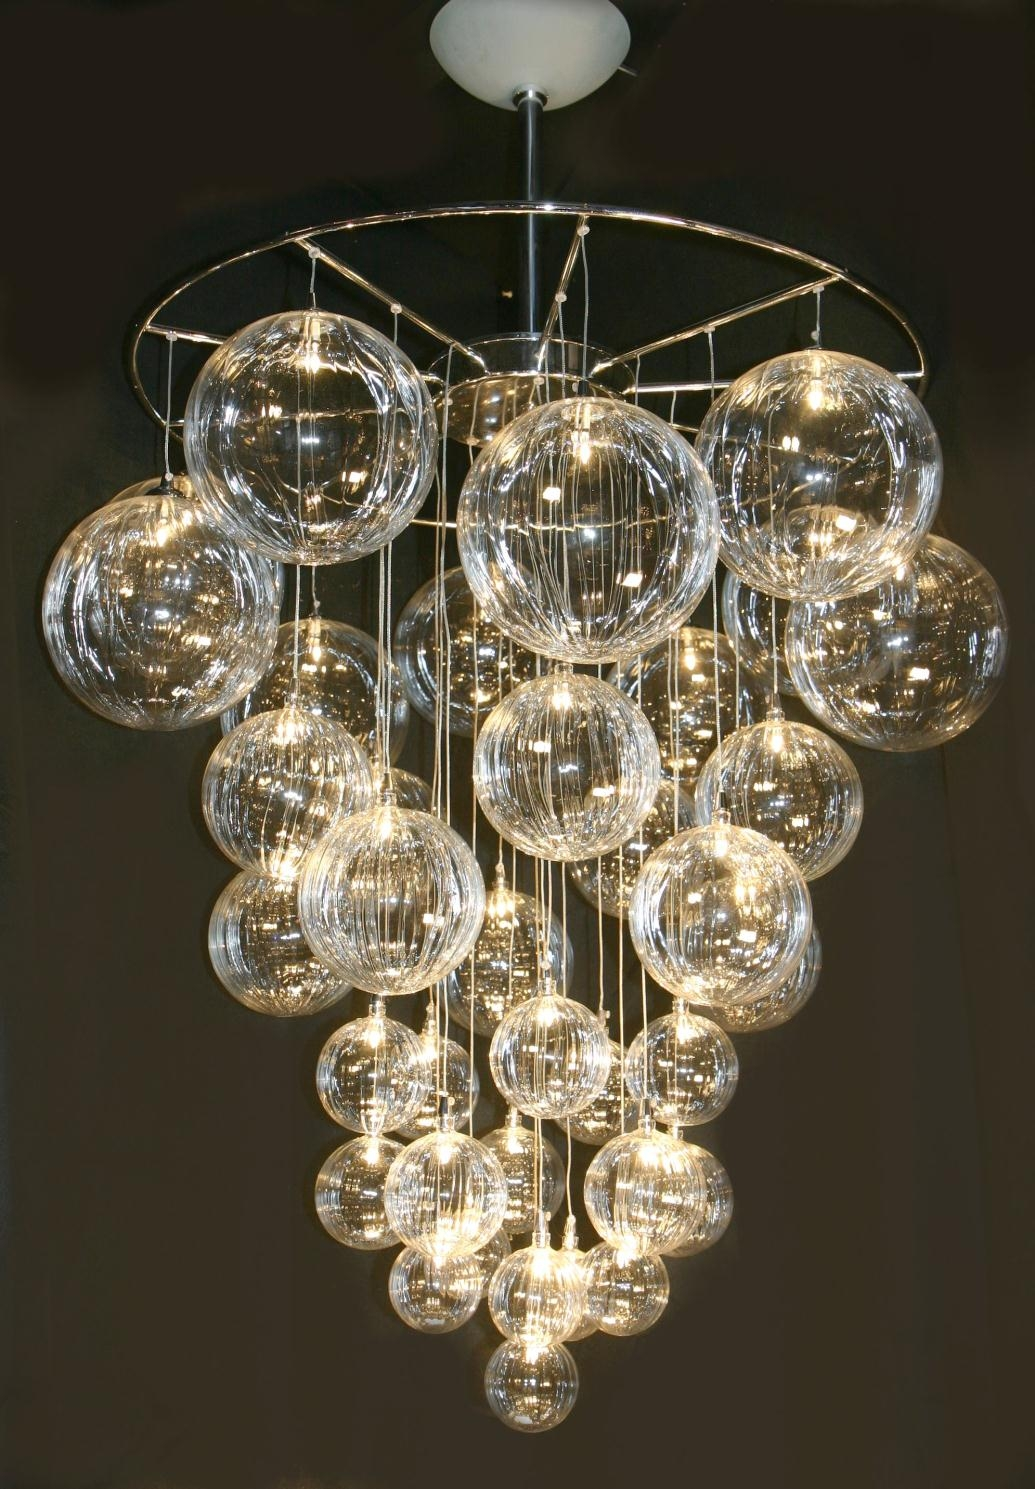 Modern Ceiling Chandeliers Intended For Ultra Modern Chandeliers (Image 8 of 15)